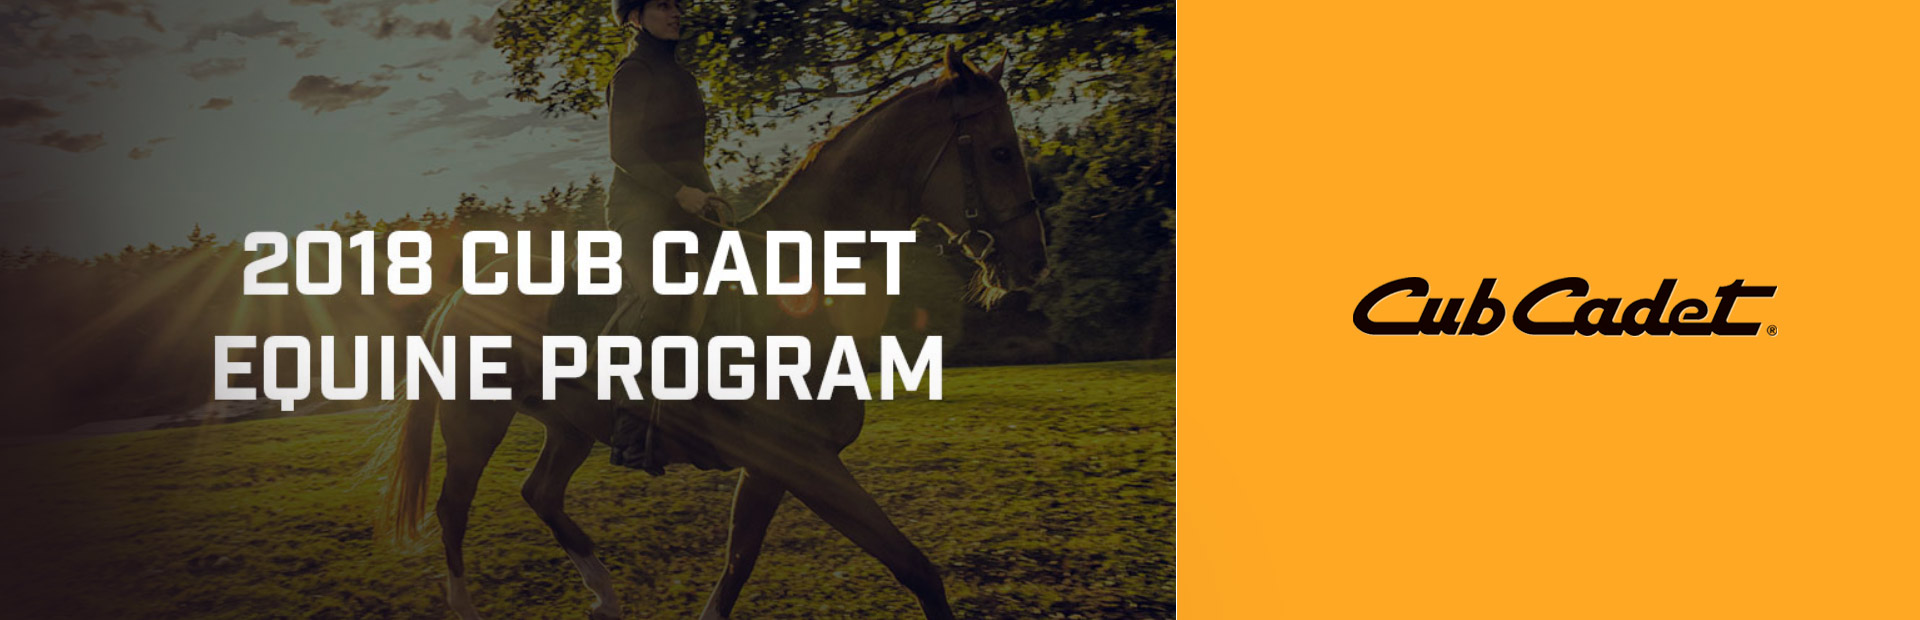 Cub Cadet: Equine Clubs/Groups Eligible For A $500 Rebate